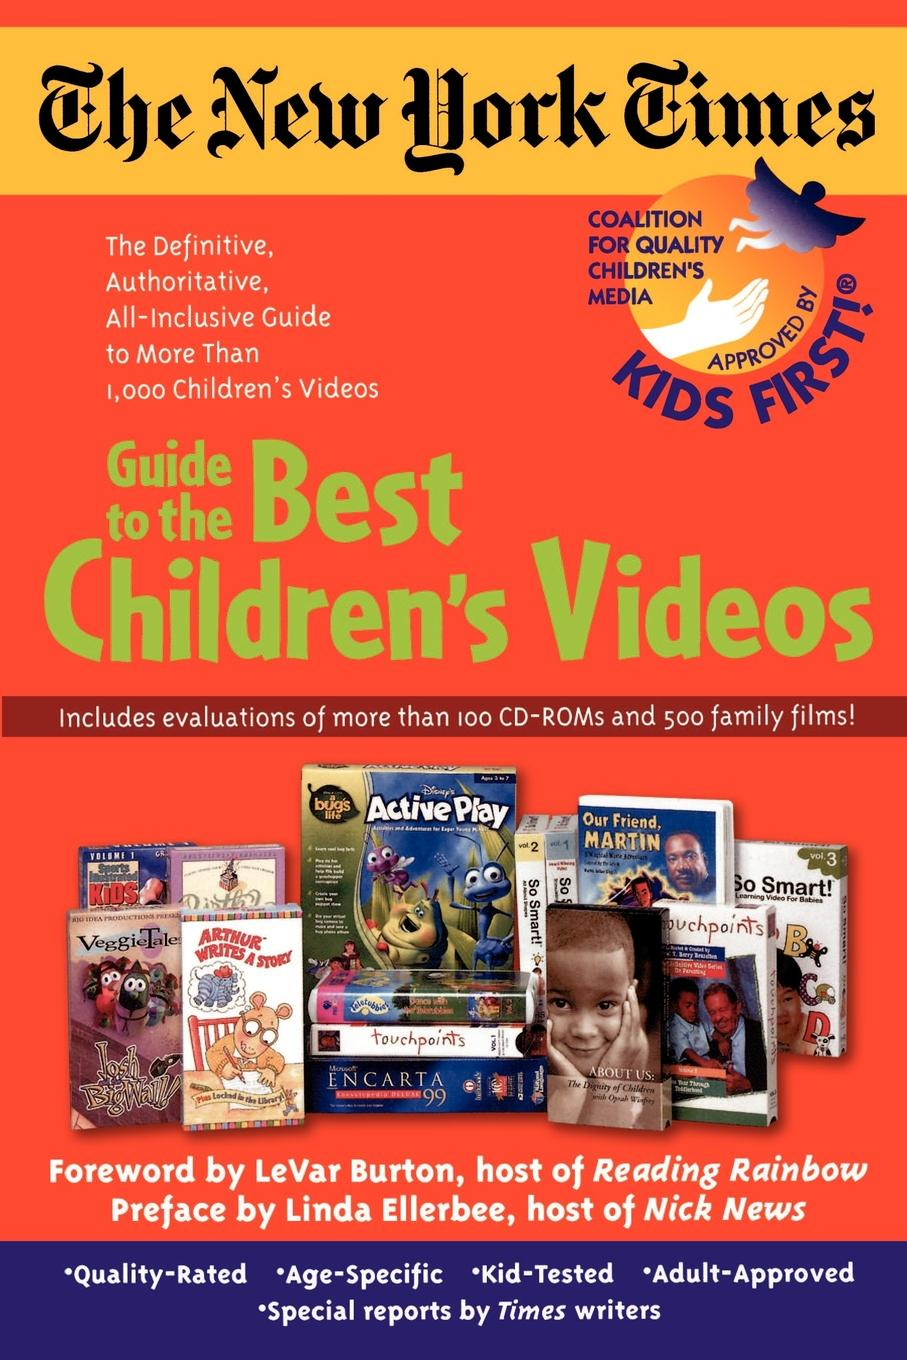 Ranny Levy, First! Kids, Kids First! The New York Times Guide to the Best Children's Videos the mission gold the videos